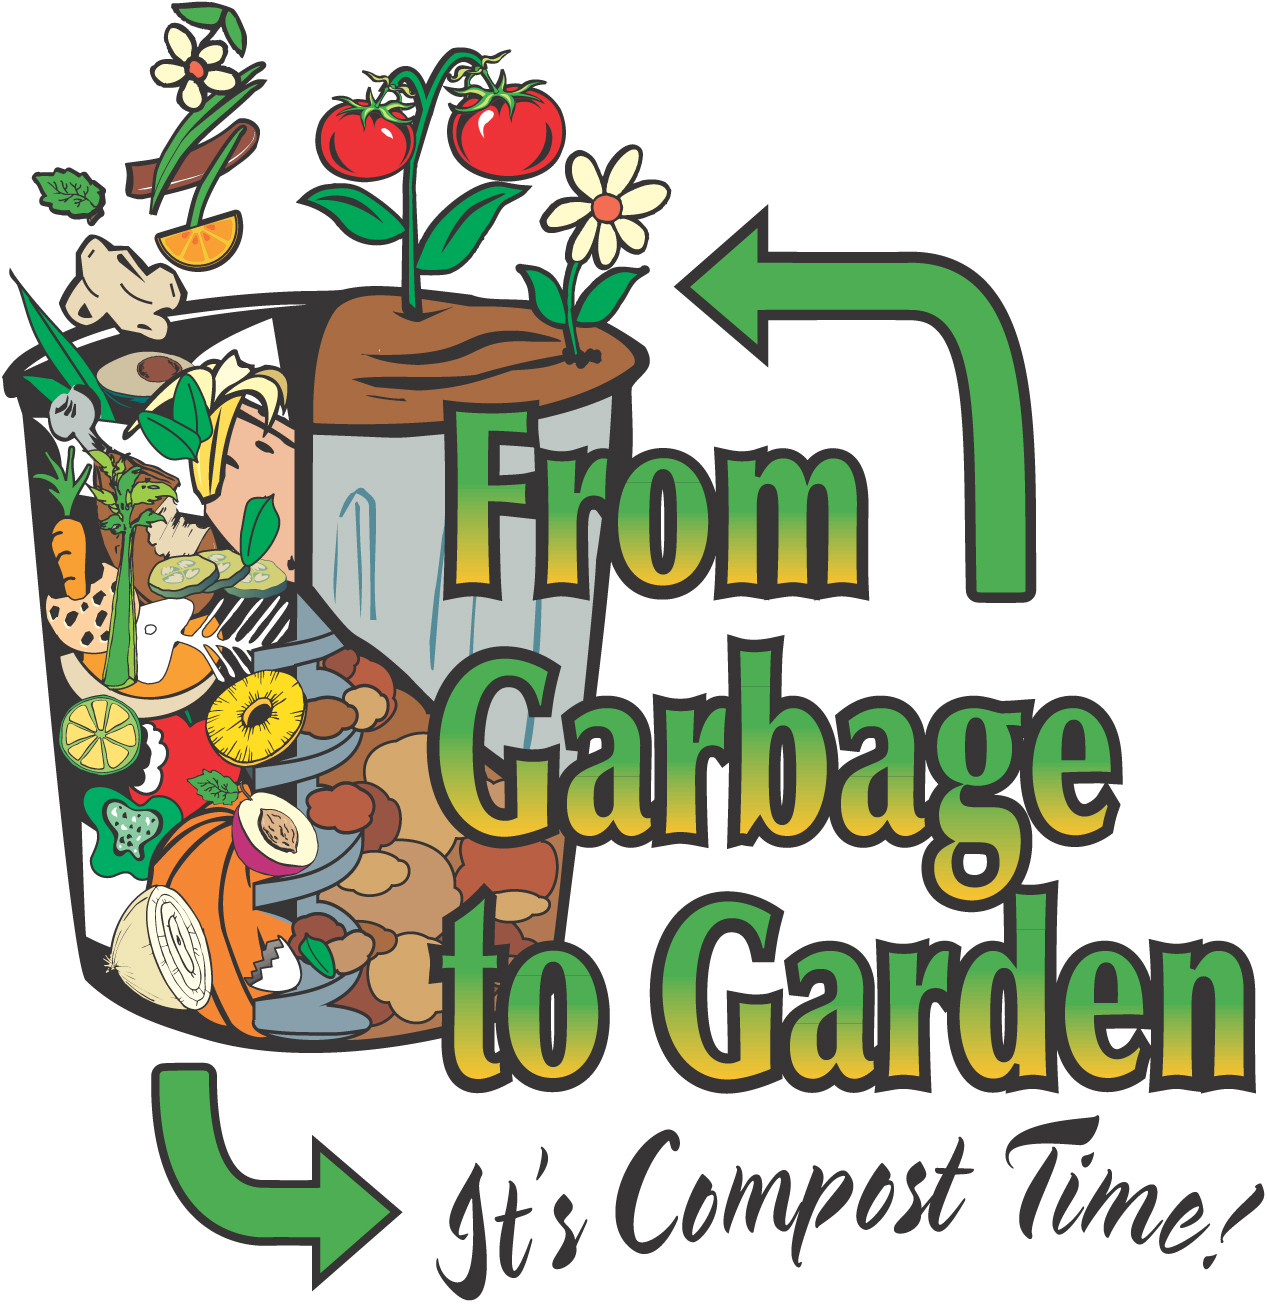 Garbage to Garden logo